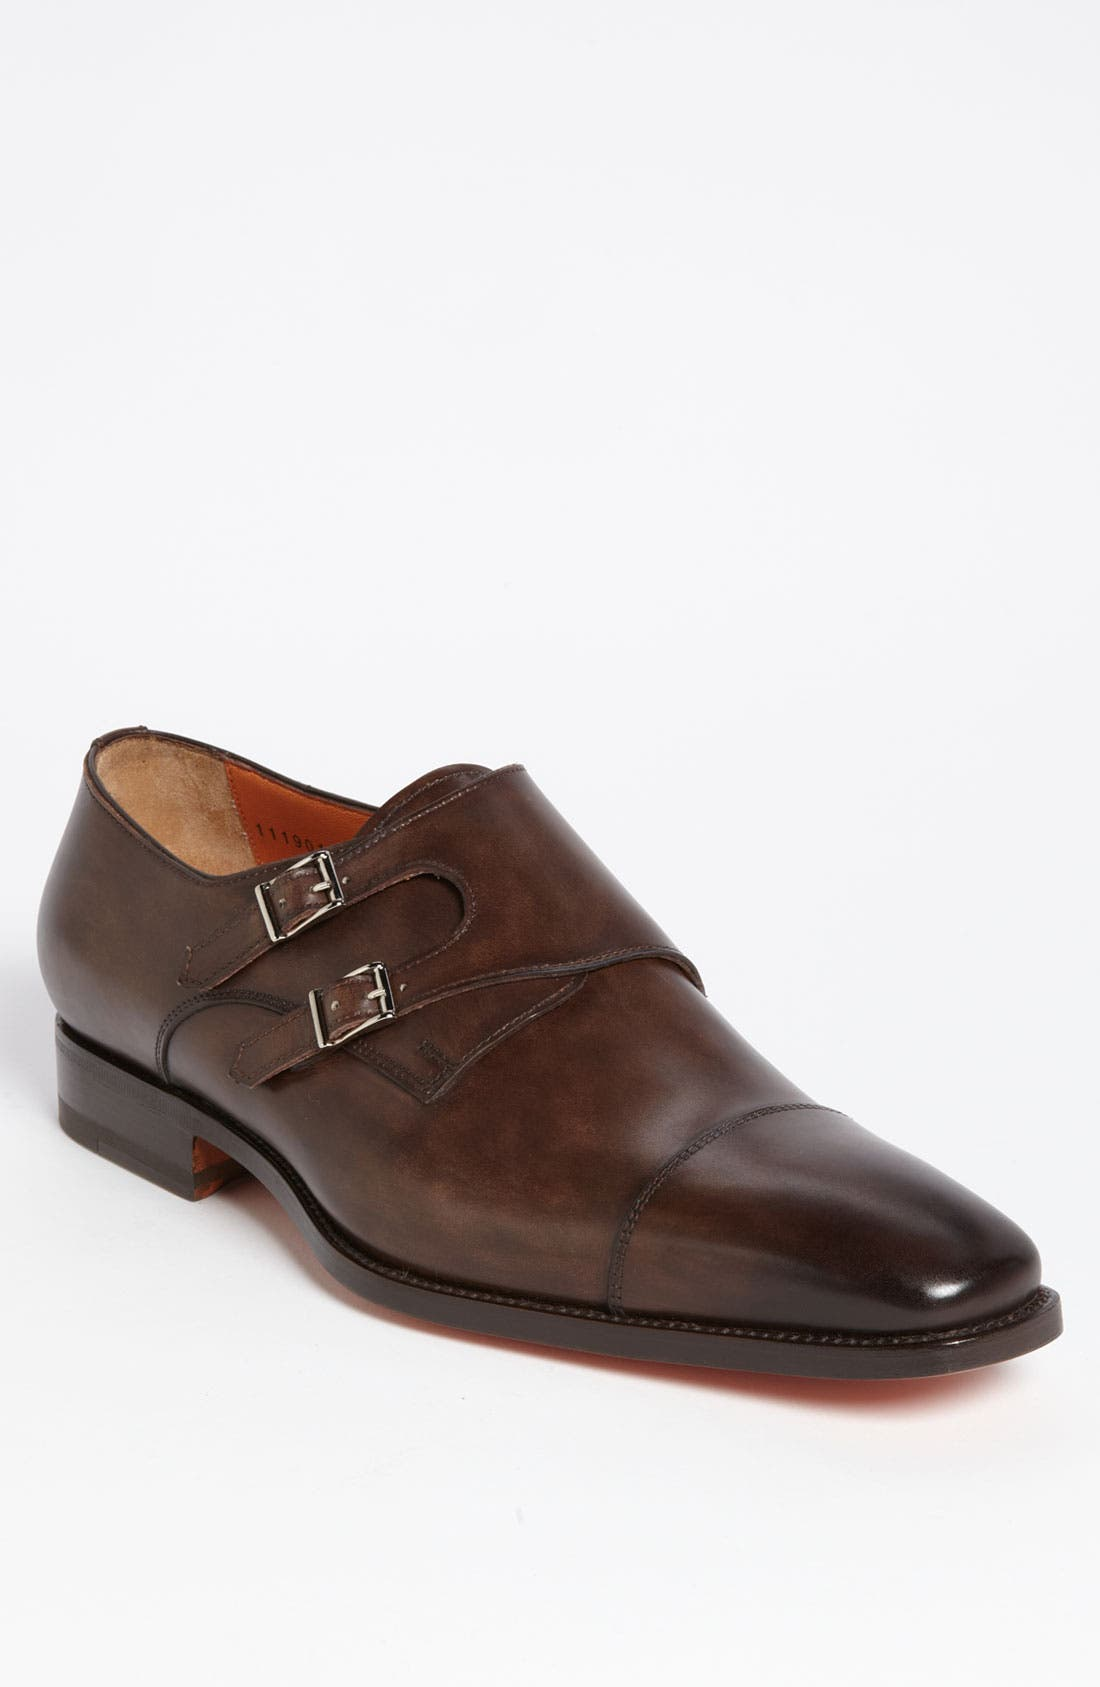 Main Image - Santoni 'Sumner' Double Monk Strap Slip-On